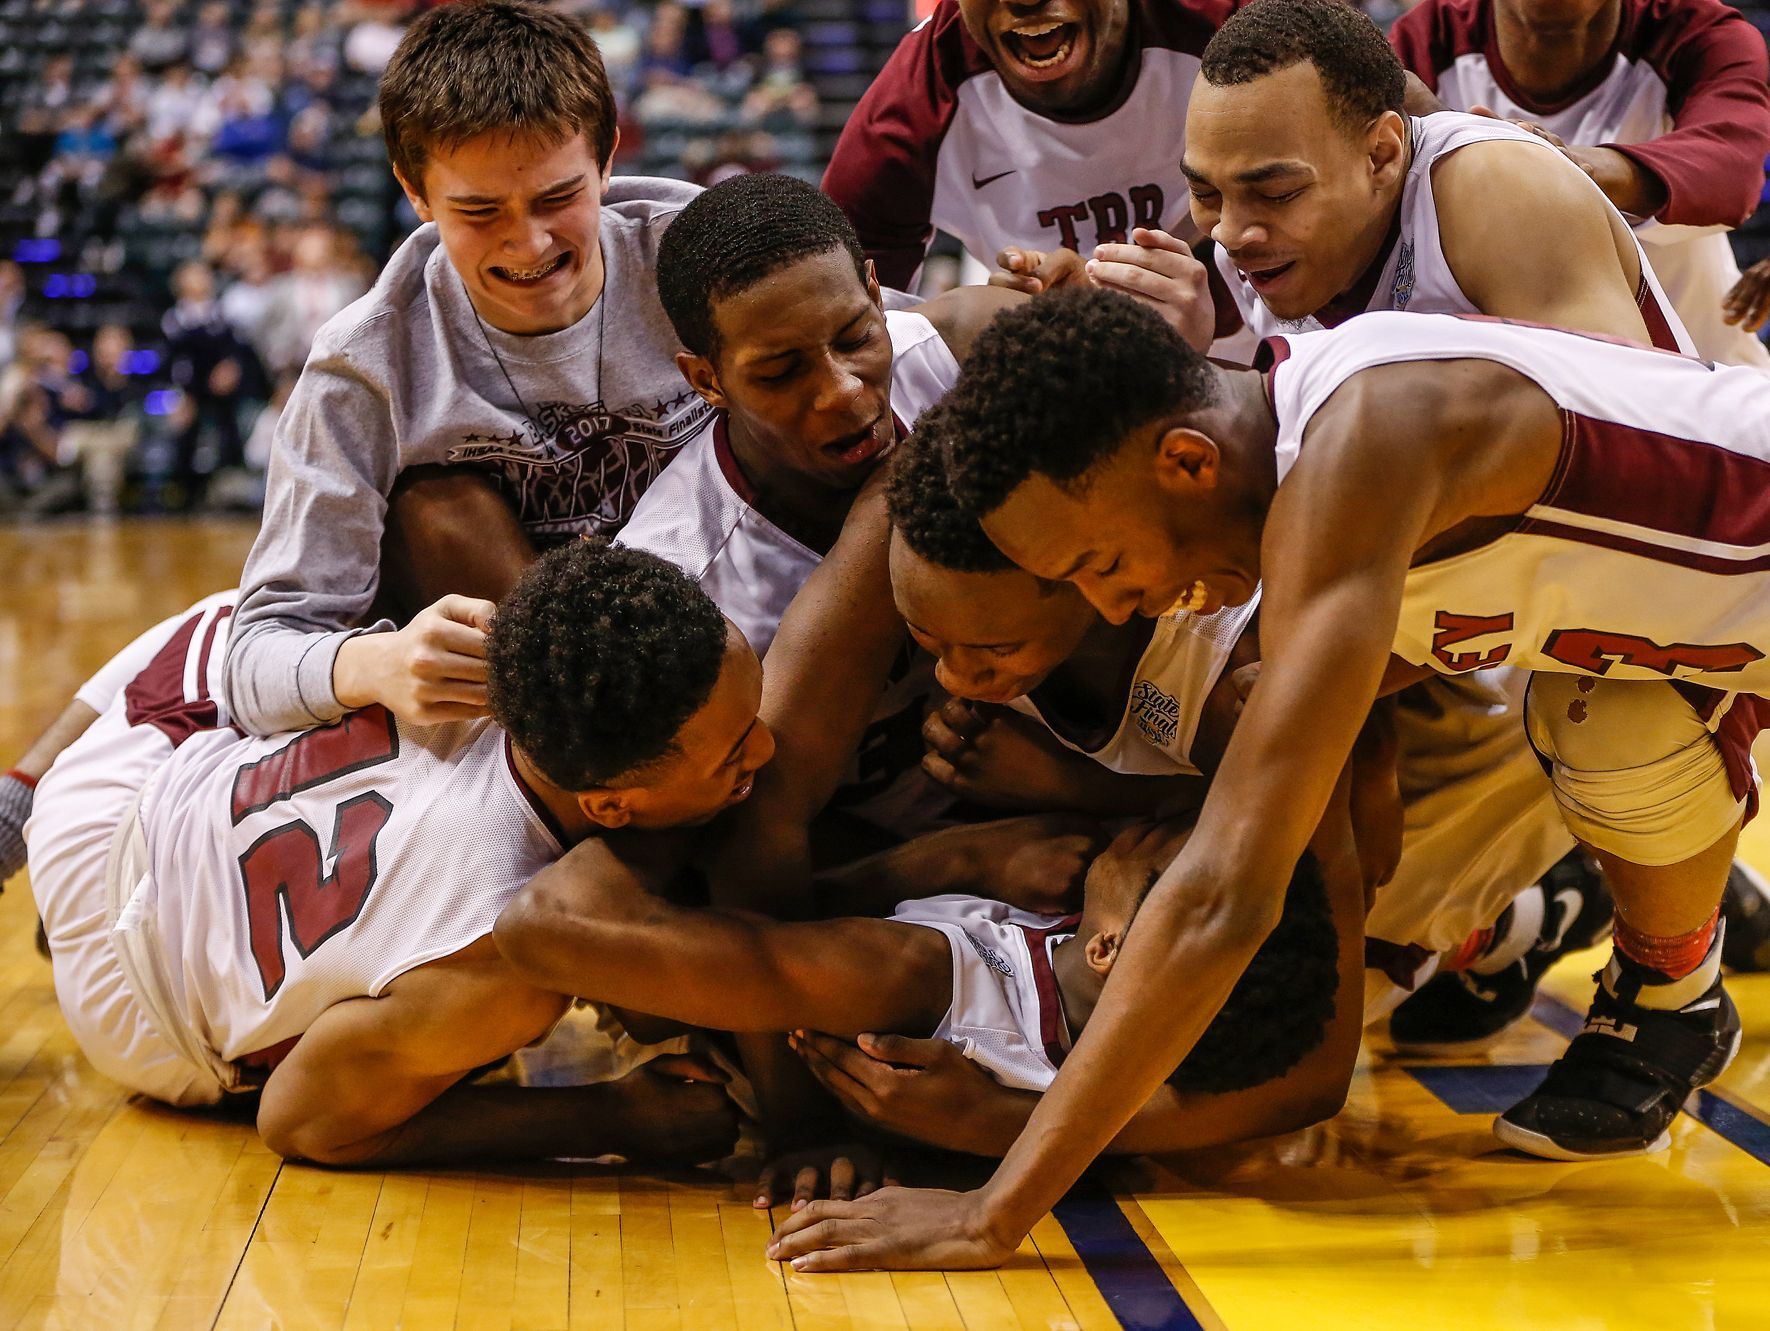 The Tindley Tigers bench clears as they tackle the Tigers' Hunter White (3) after he connected on a short jumper that put the Tigers up 51-49 over the Lafayette Central Catholic Knights as the time ticked off the clock in the fourth quarter during the IHSAA Class A state championship game at Bankers Life Fieldhouse in Indianapolis on Saturday, March 25, 2017.